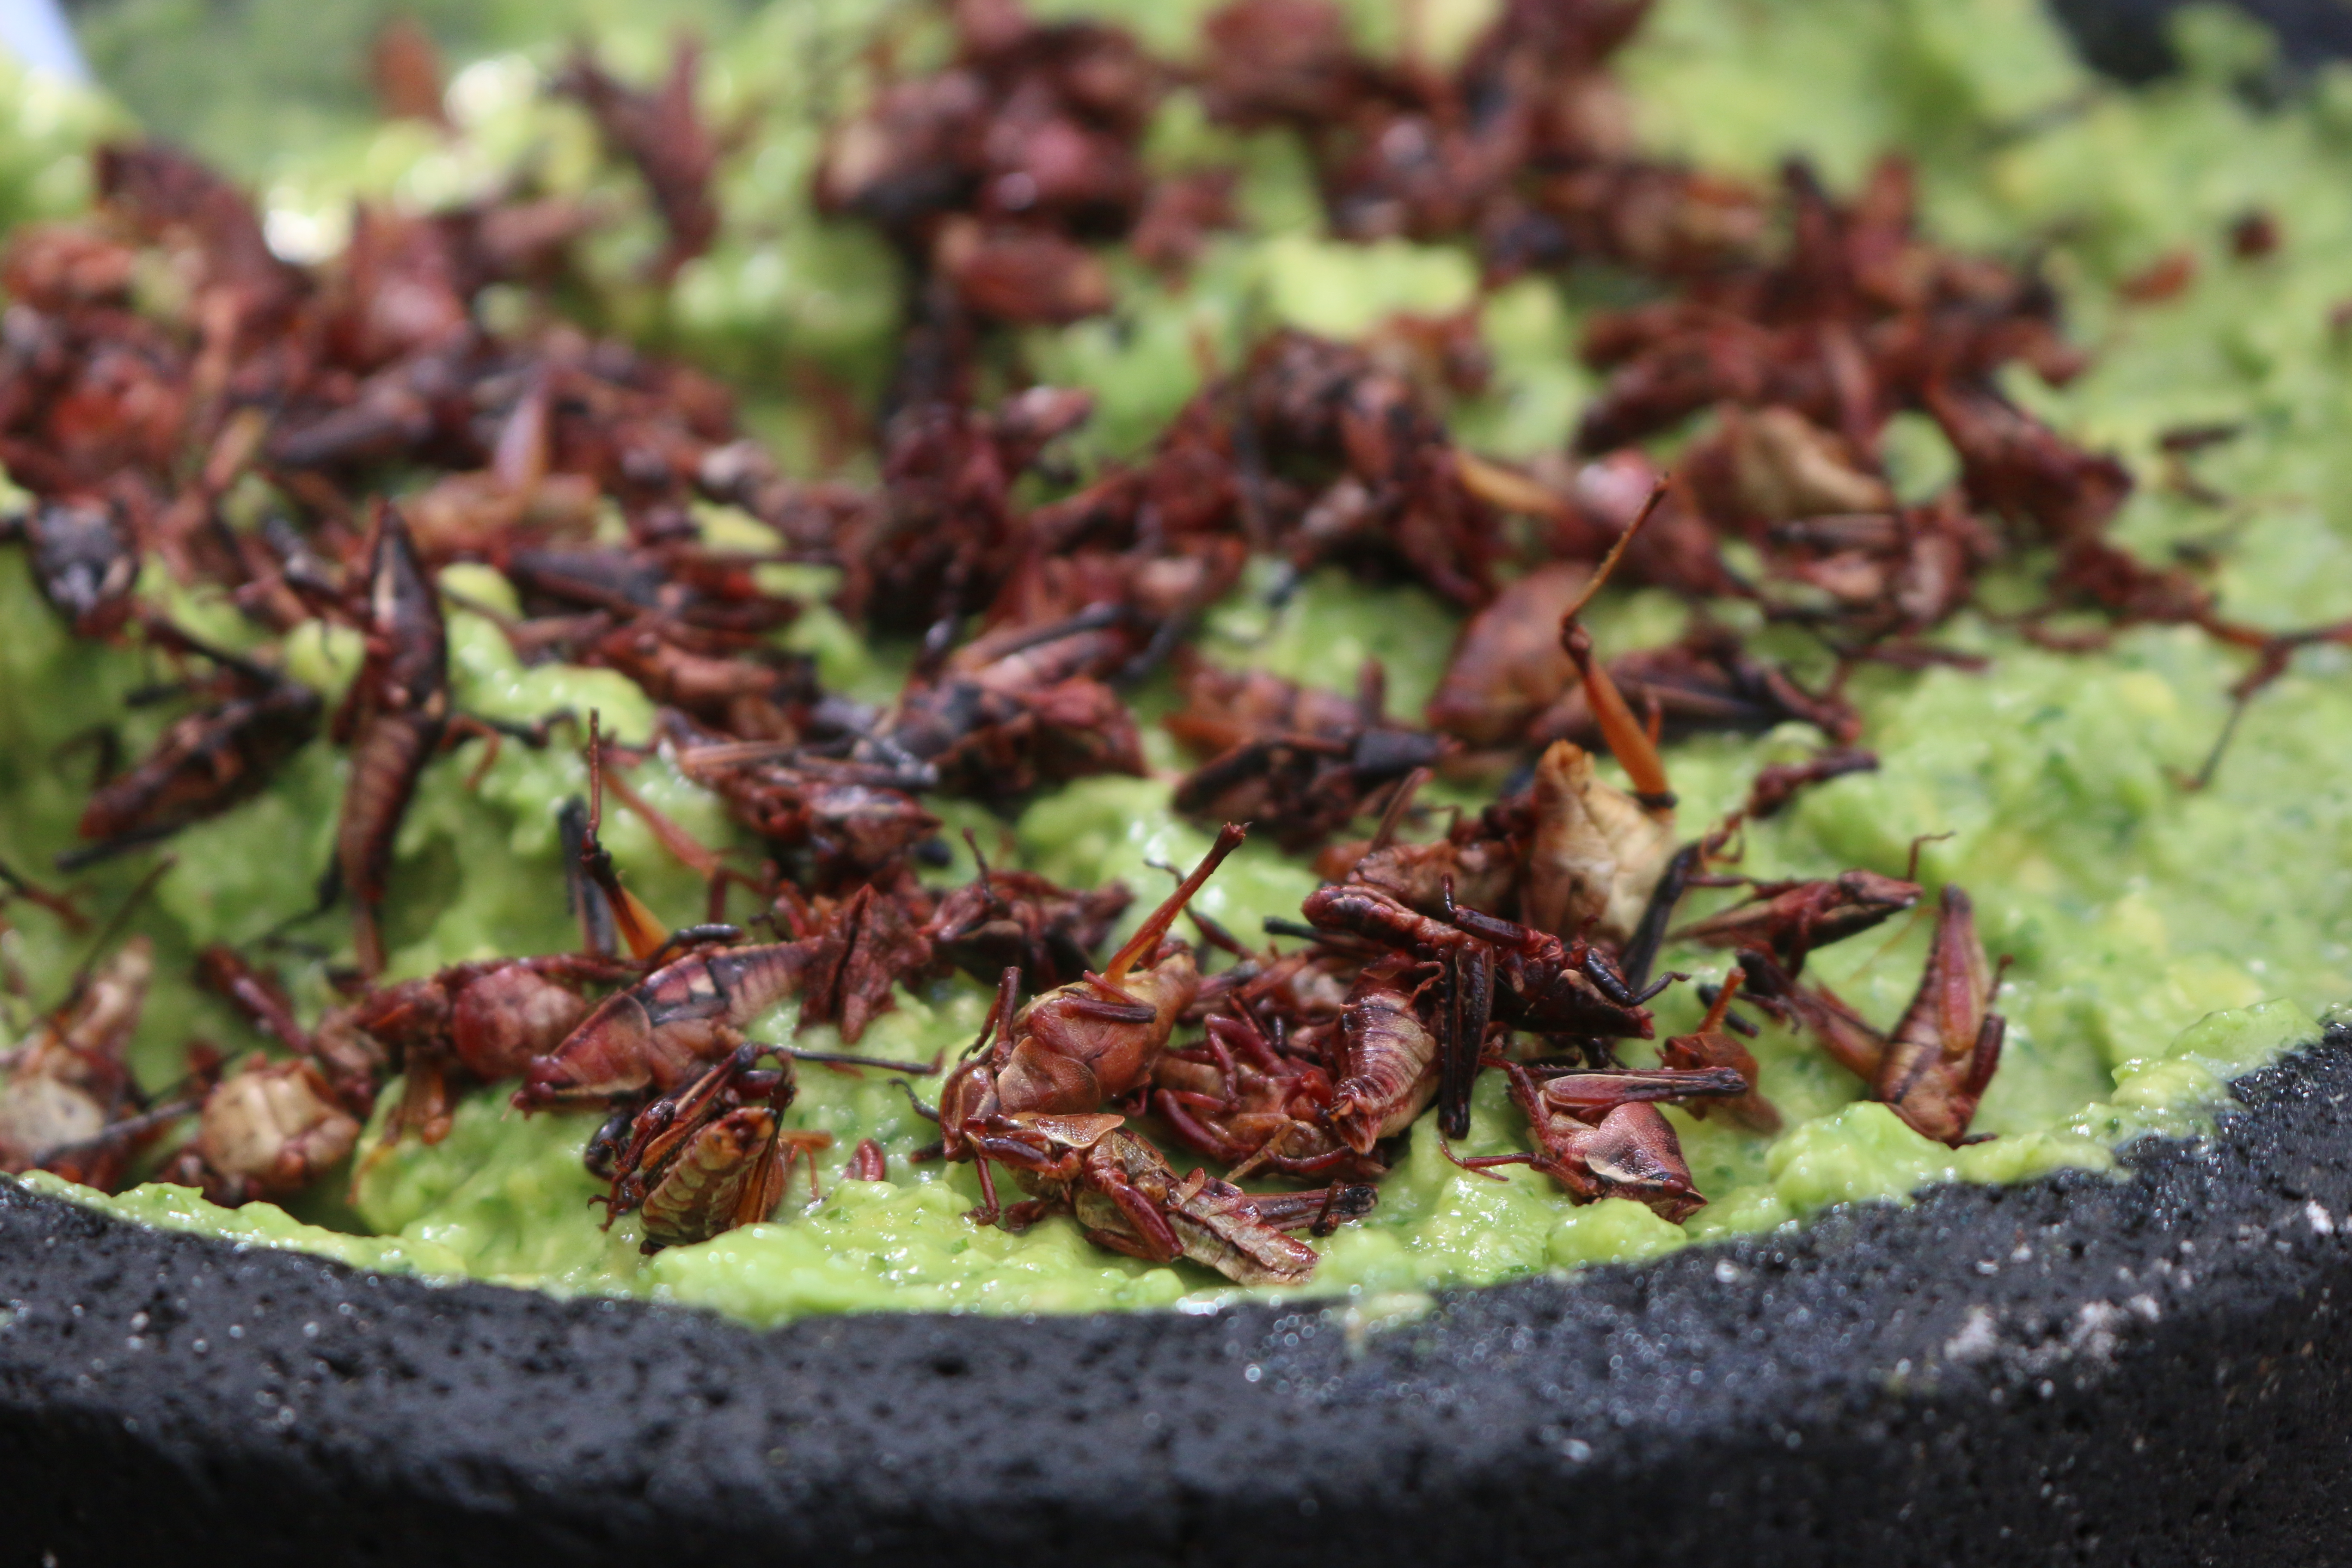 Unico 20°87° is proud of its authentic Mexican dining options, like fresh guacamole, even sprinkled with fried grasshoppers, if you'd like!